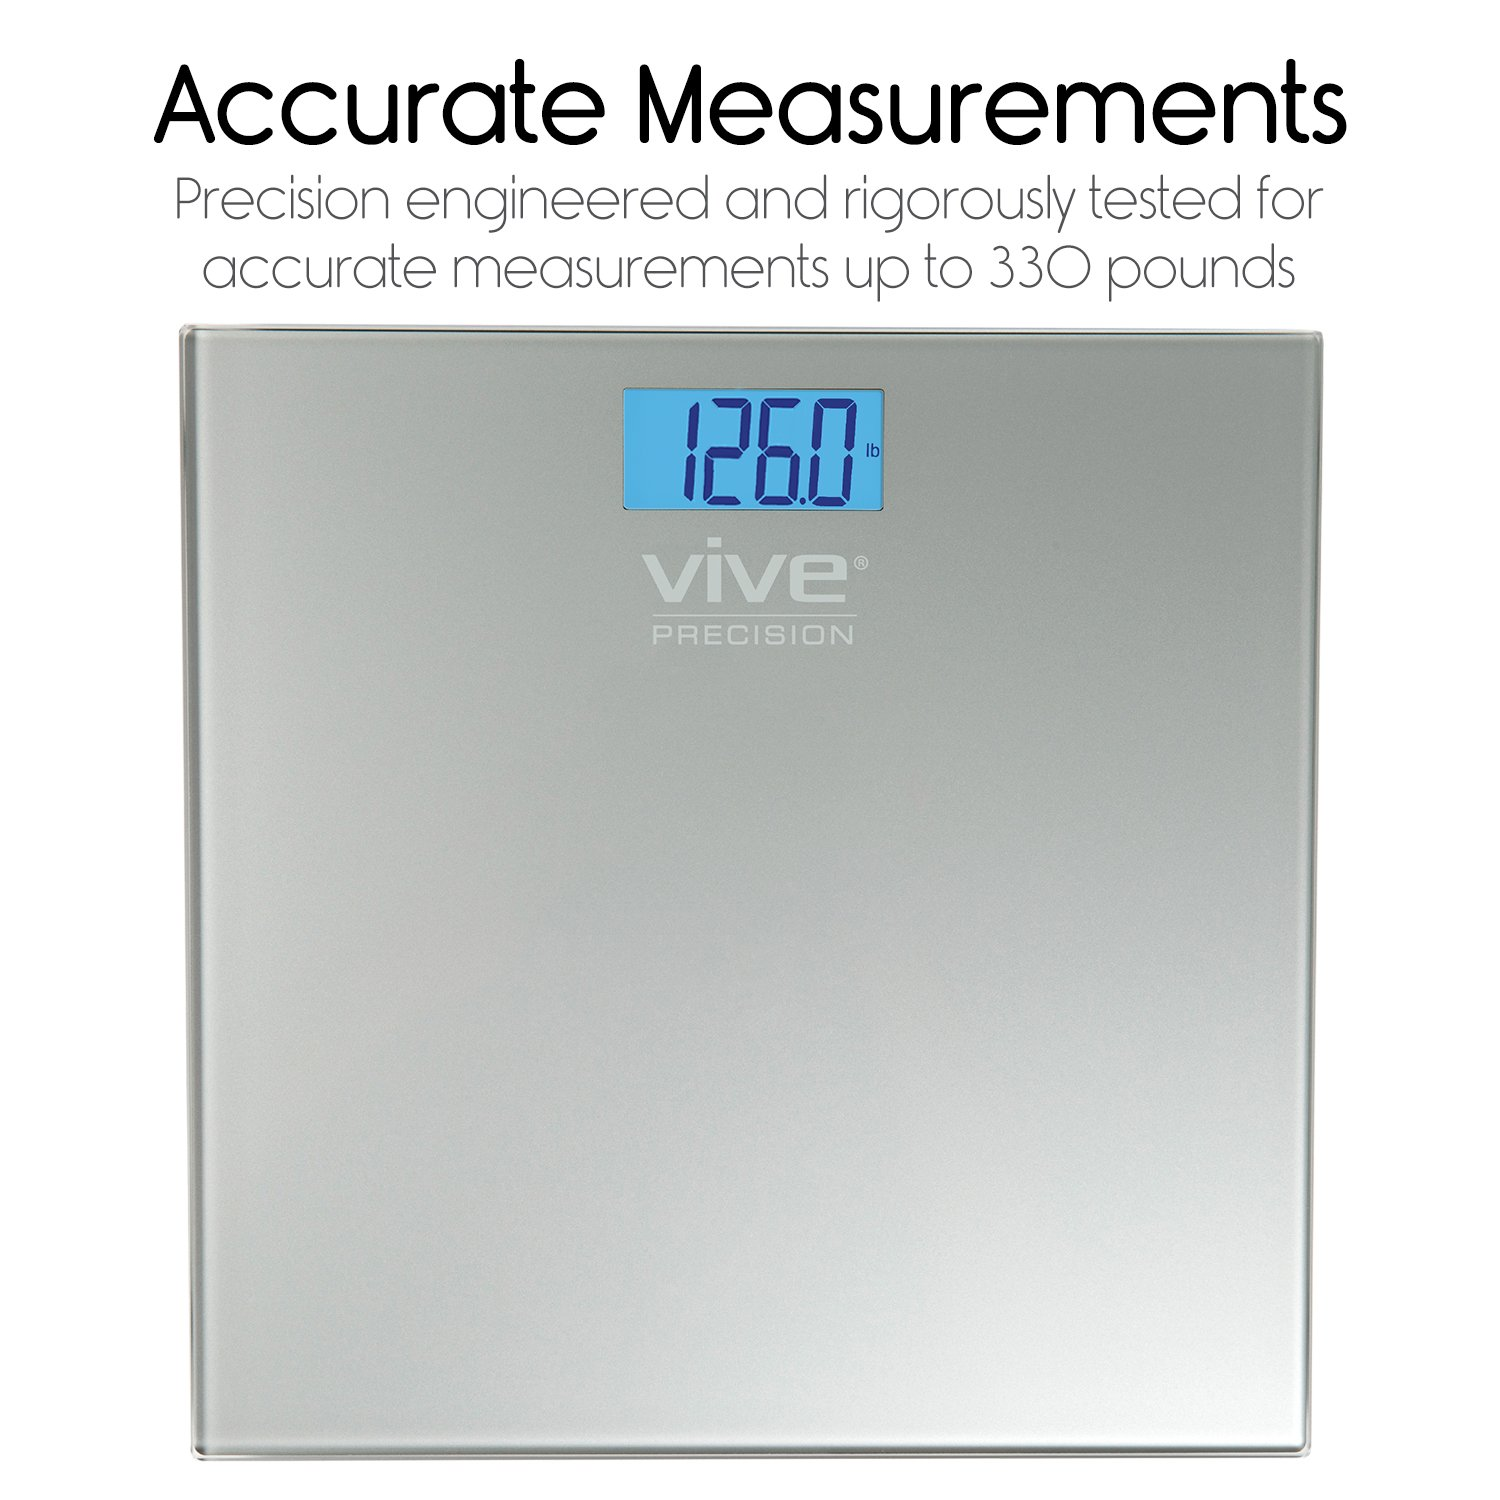 Most accurate bathroom scale 2014 - Amazon Com Vive Precision Digital Bathroom Scale Weight Scale Measuring Device Electronic Body Scale Easy To Read Backlit Display Accurate To 2